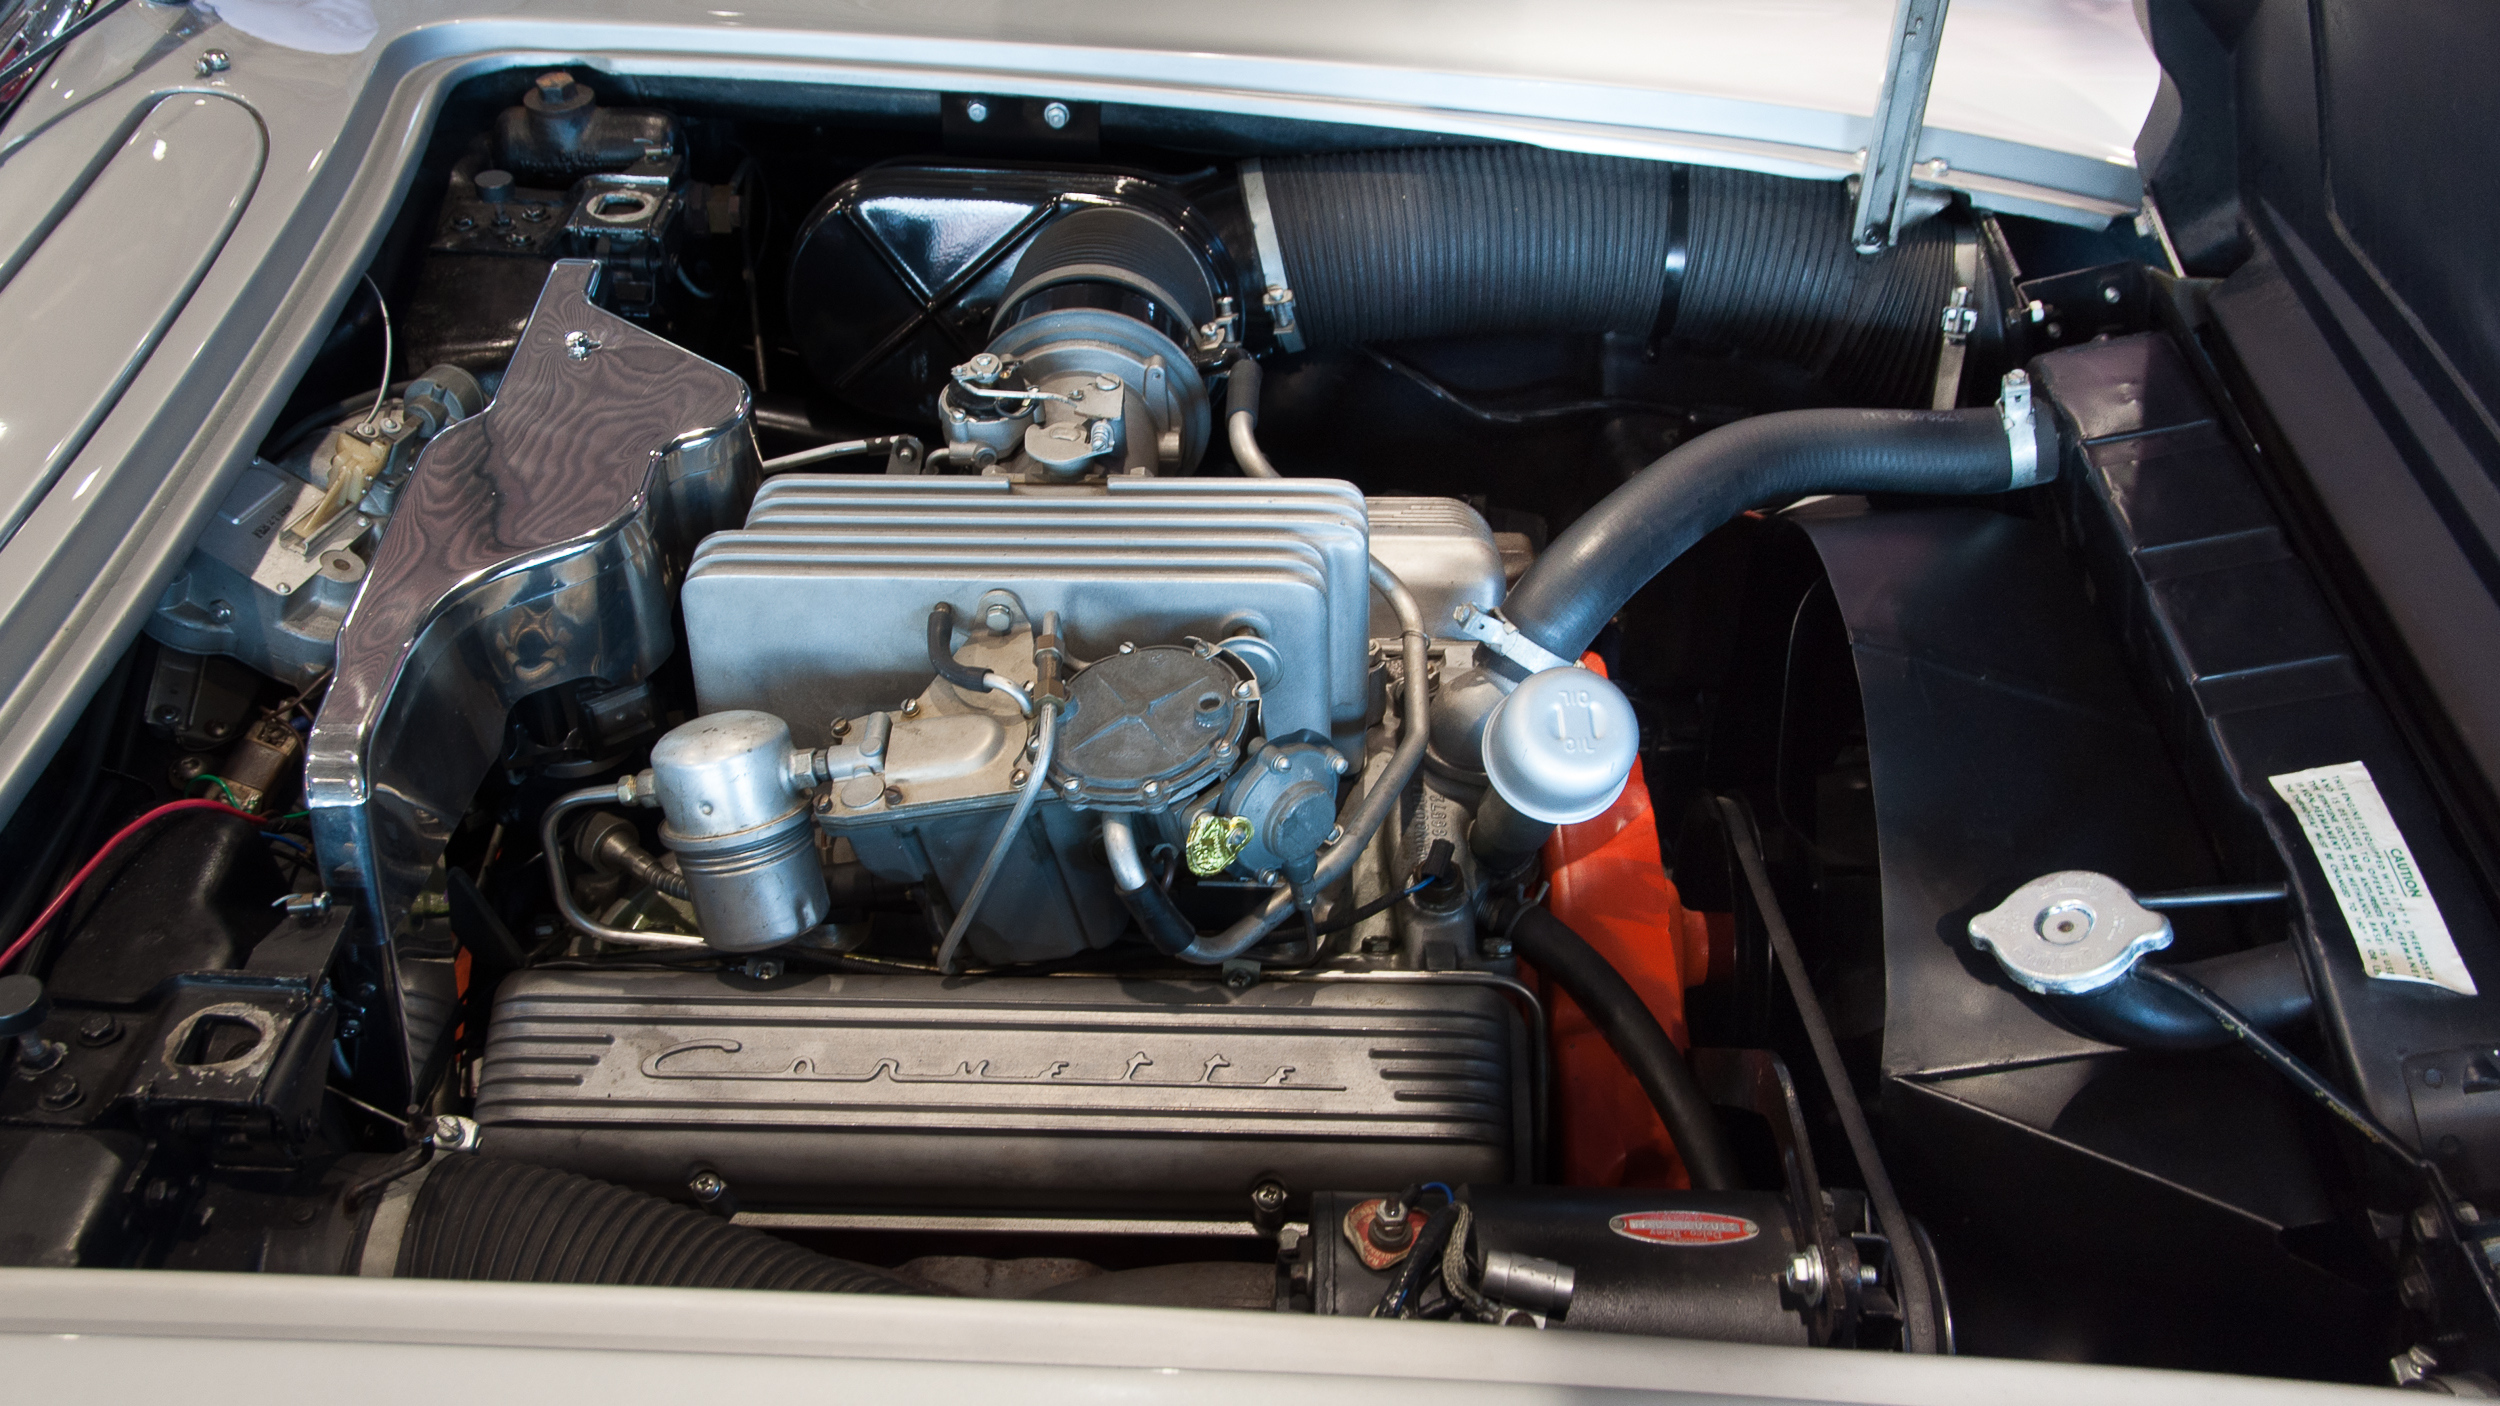 1959 Chevy Impala Ignition Wiring Diagram Fuel Injection Wikiwand